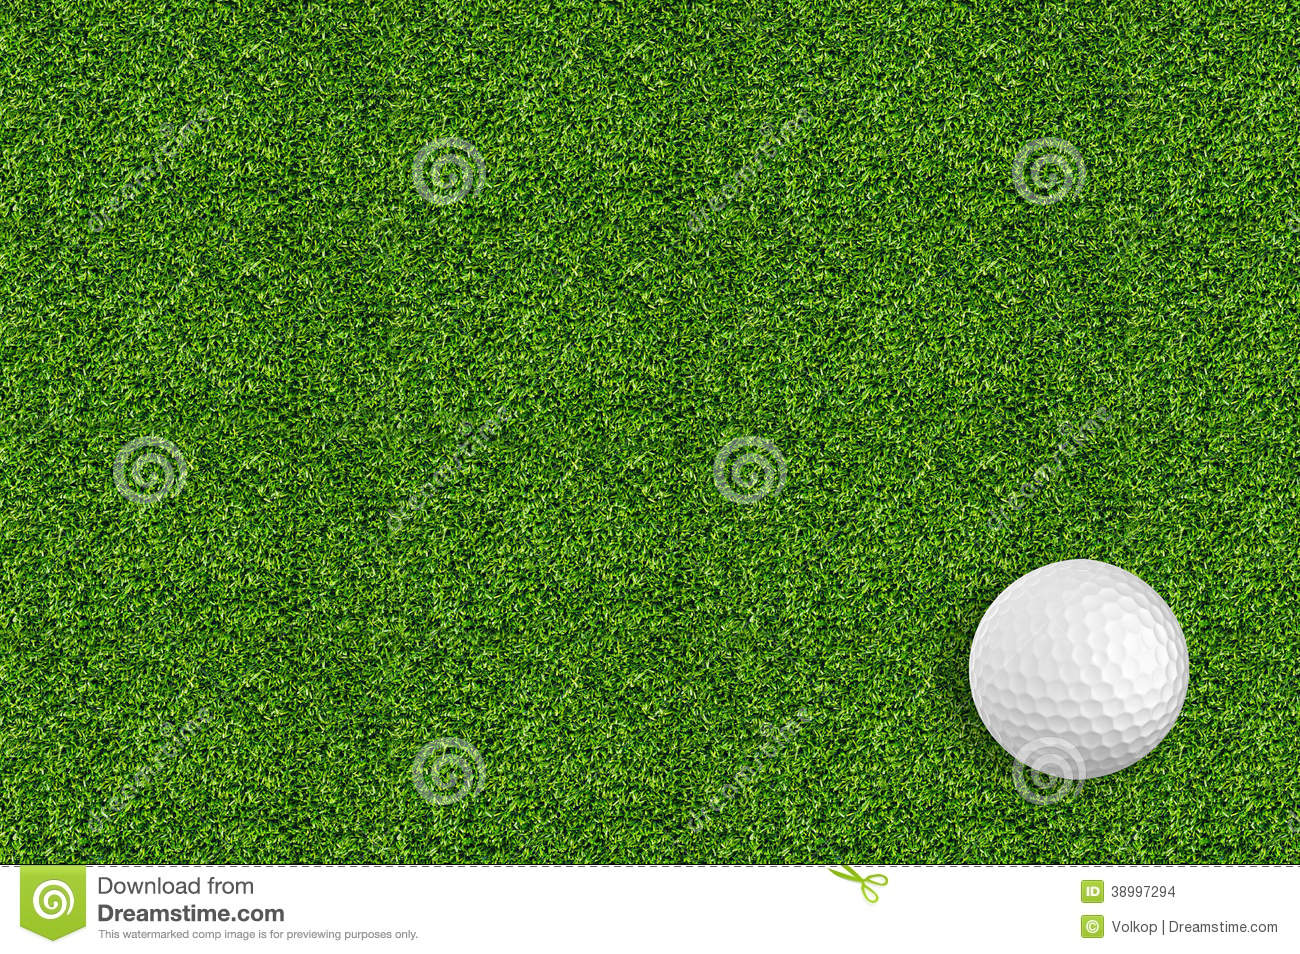 Golf ball on the green grass of the golf